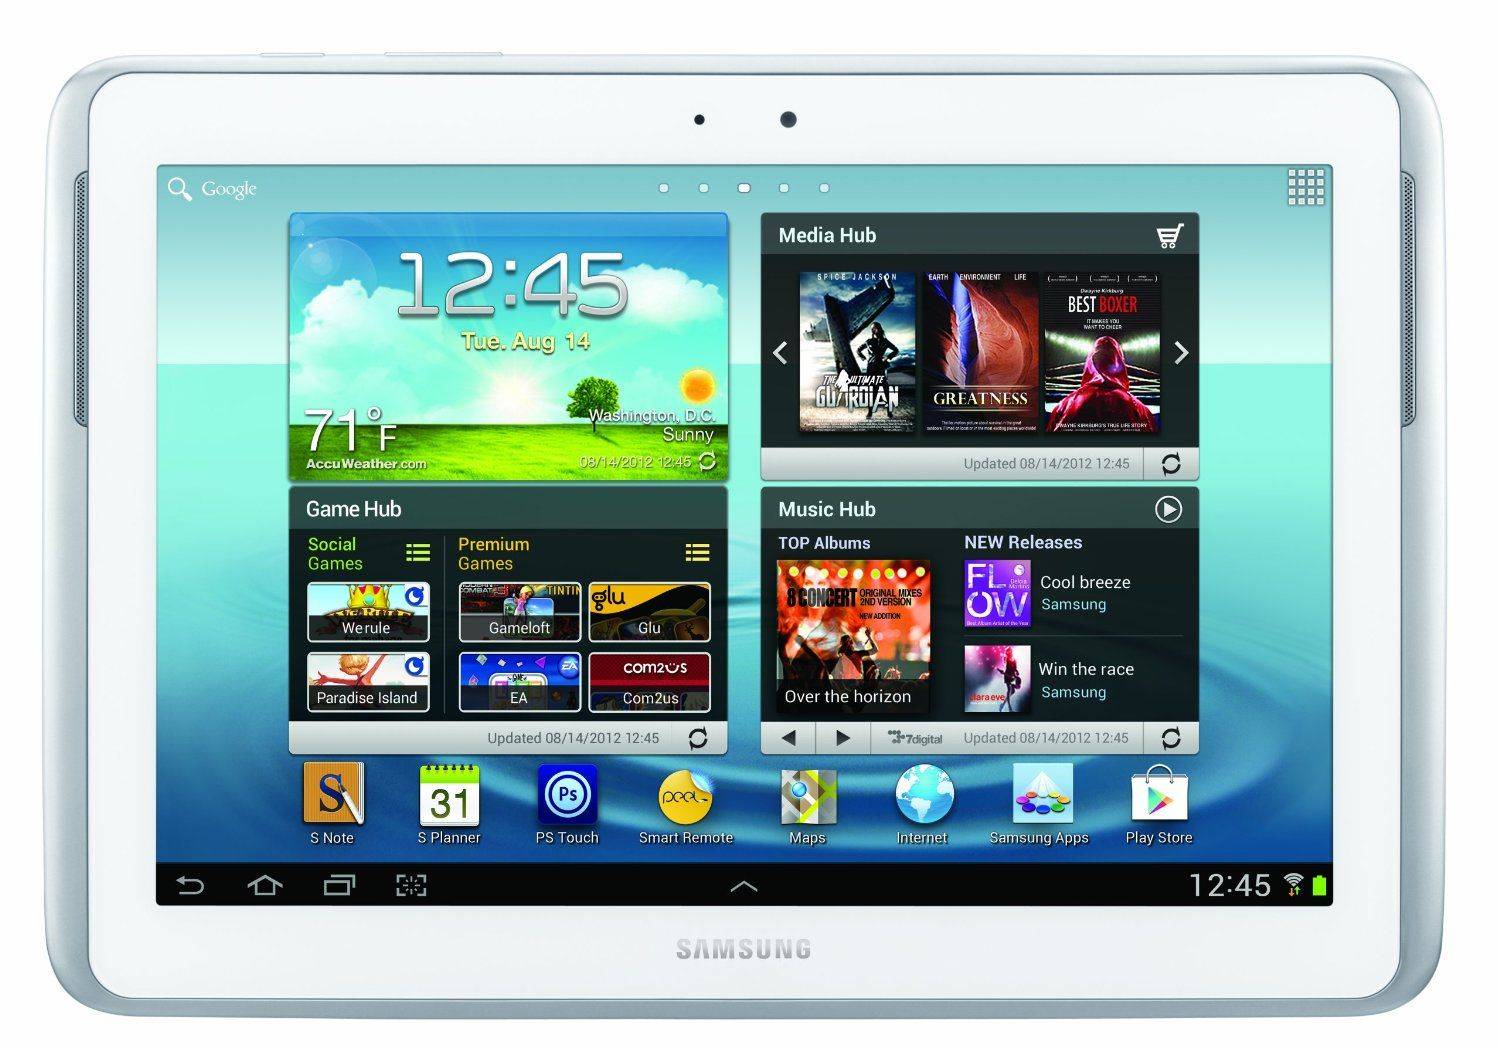 Samsung Galaxy Note 10 1 16gb White Best Gifts For Christmas Gadgets Samsung Galaxy Note Galaxy Tablet Note Tablet Samsung Tablet